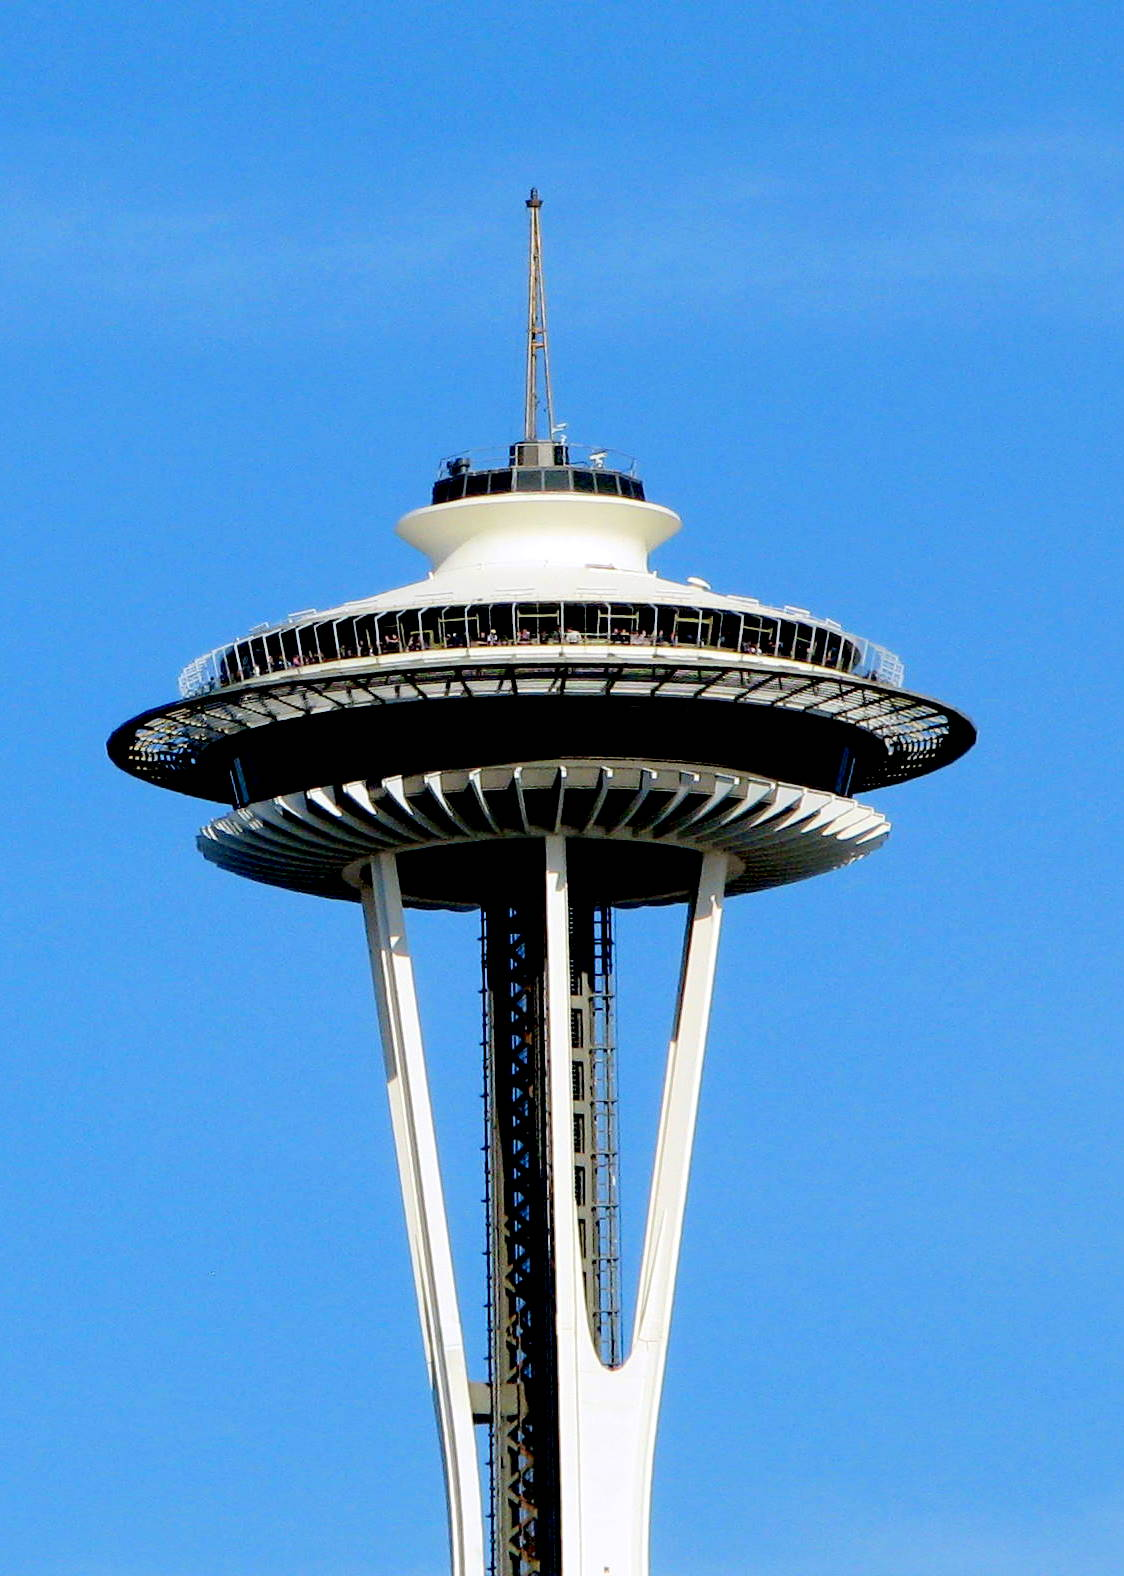 Www Bing Comseattle: Superb Photos Of The Seattle Space Needle : Places : BOOMSbeat